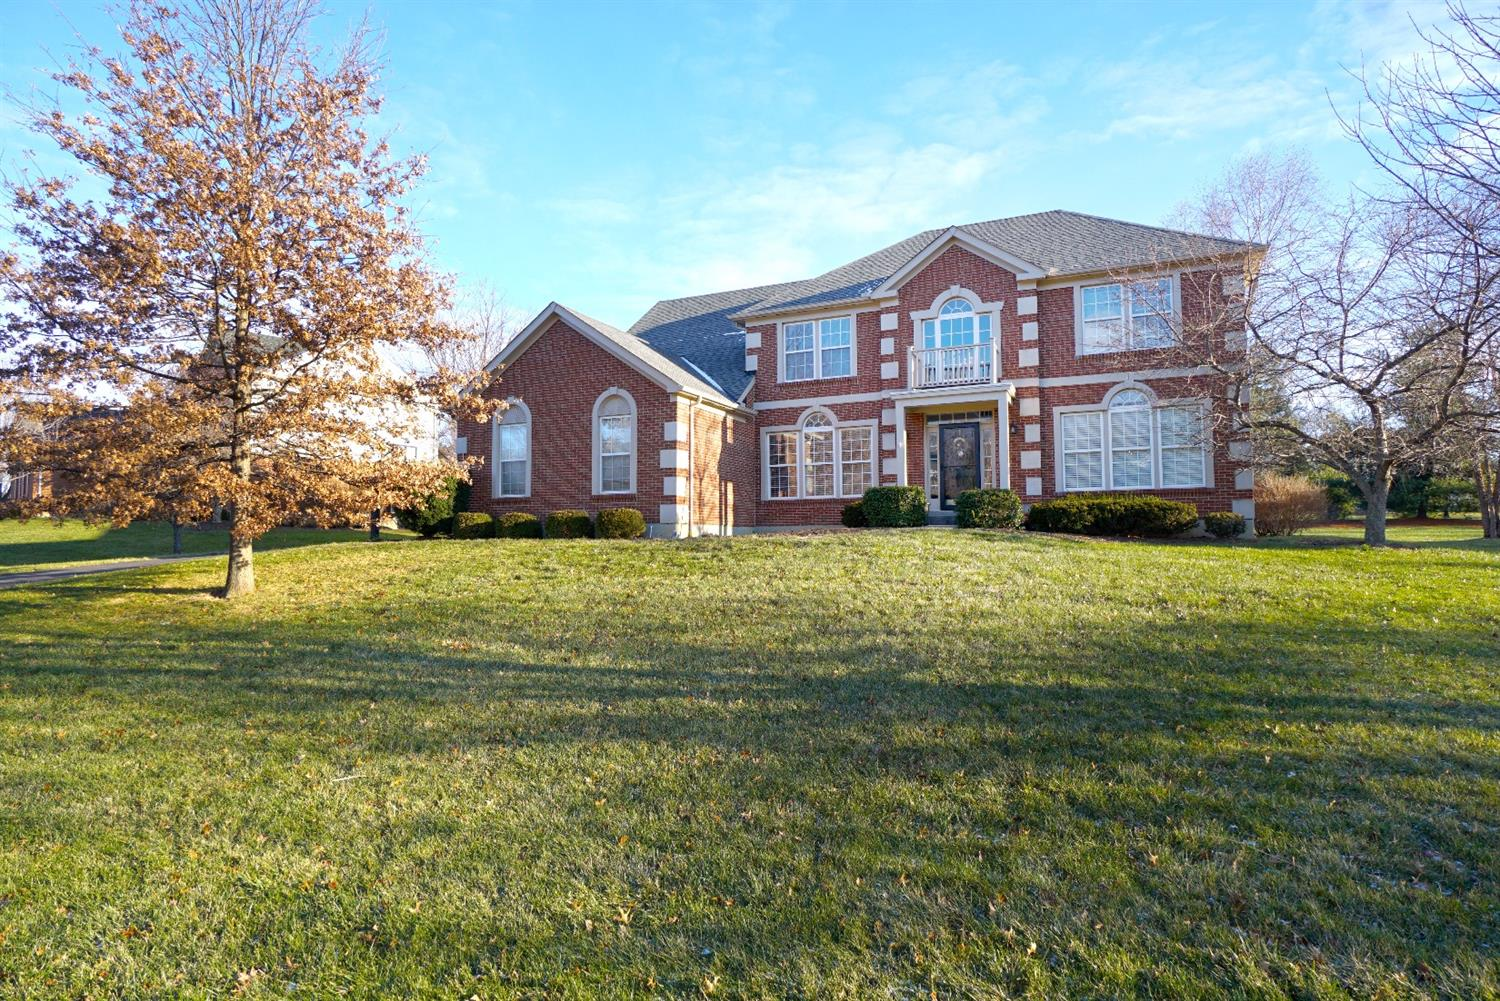 Exceptional 4 bed/3.5 bath with Great yard! Zaring Home in Polo Fields with finished lower level and bar. Newer roof, kitchen appliances, driveway, and more. Large master suite has attached sitting room and double shower heads. 2 pools and play areas. 80+acres of green space!